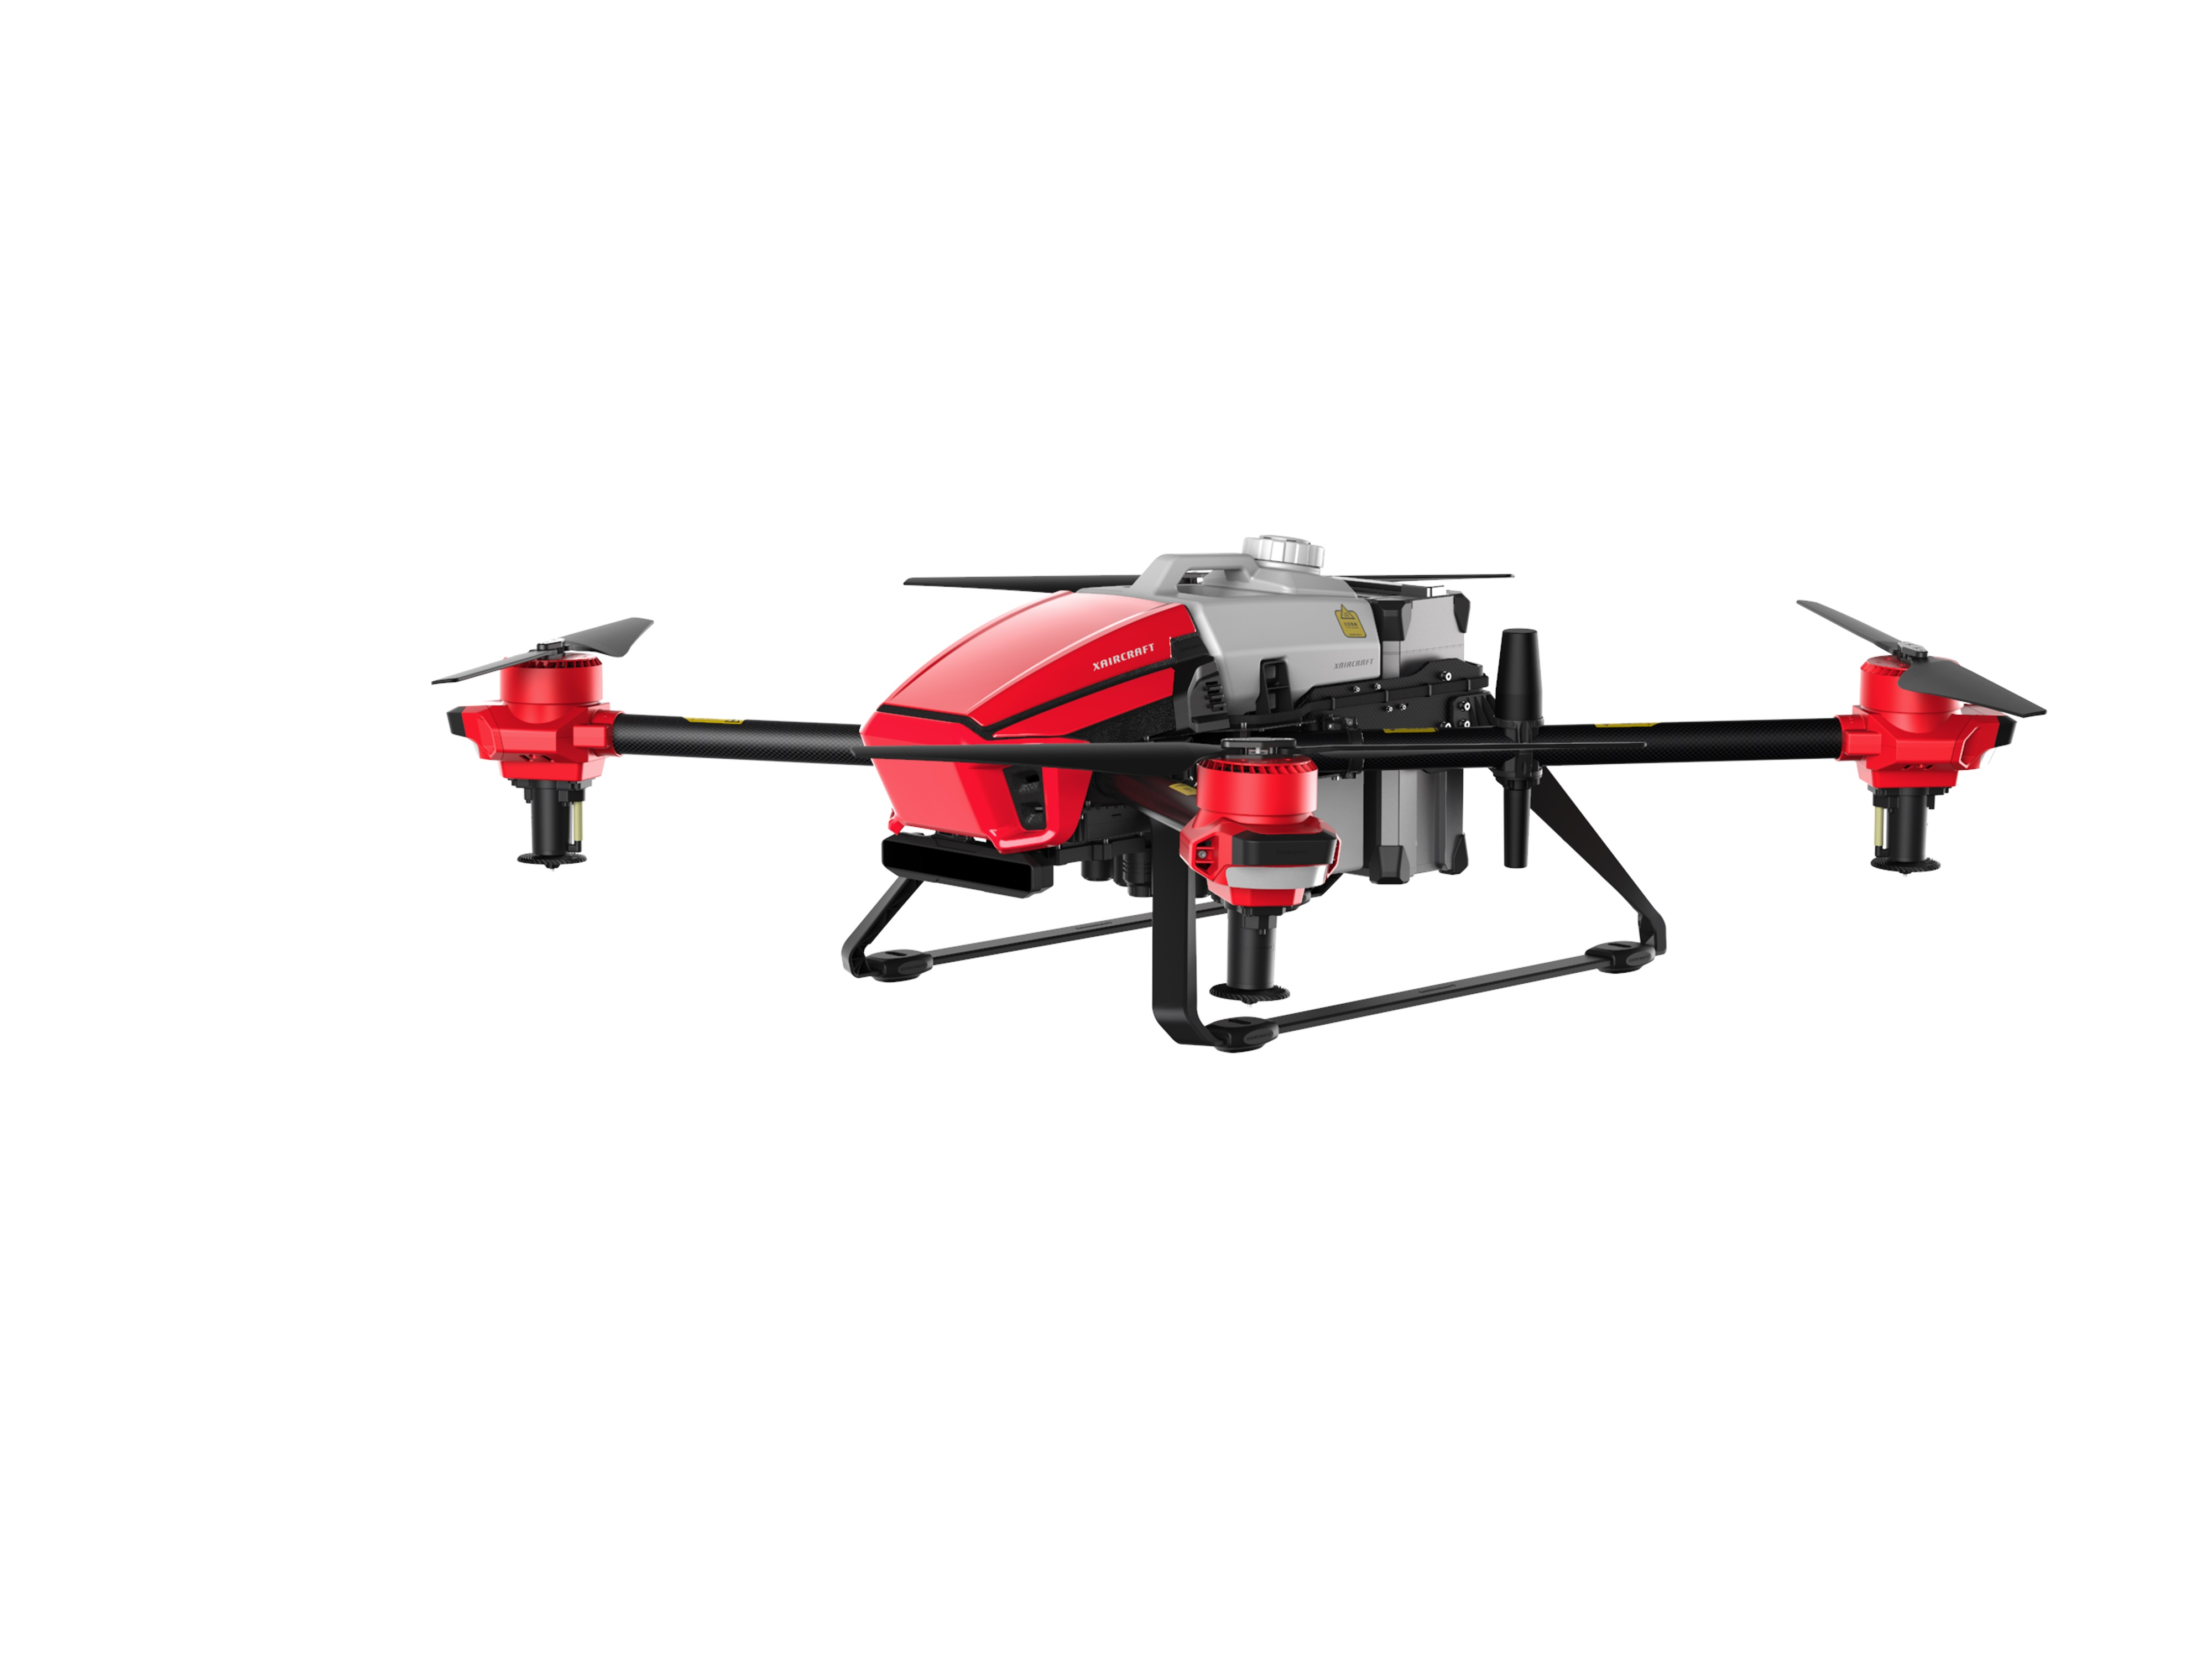 Drone,UAV,Agriculture dusting,Helicopter-P10-20-30